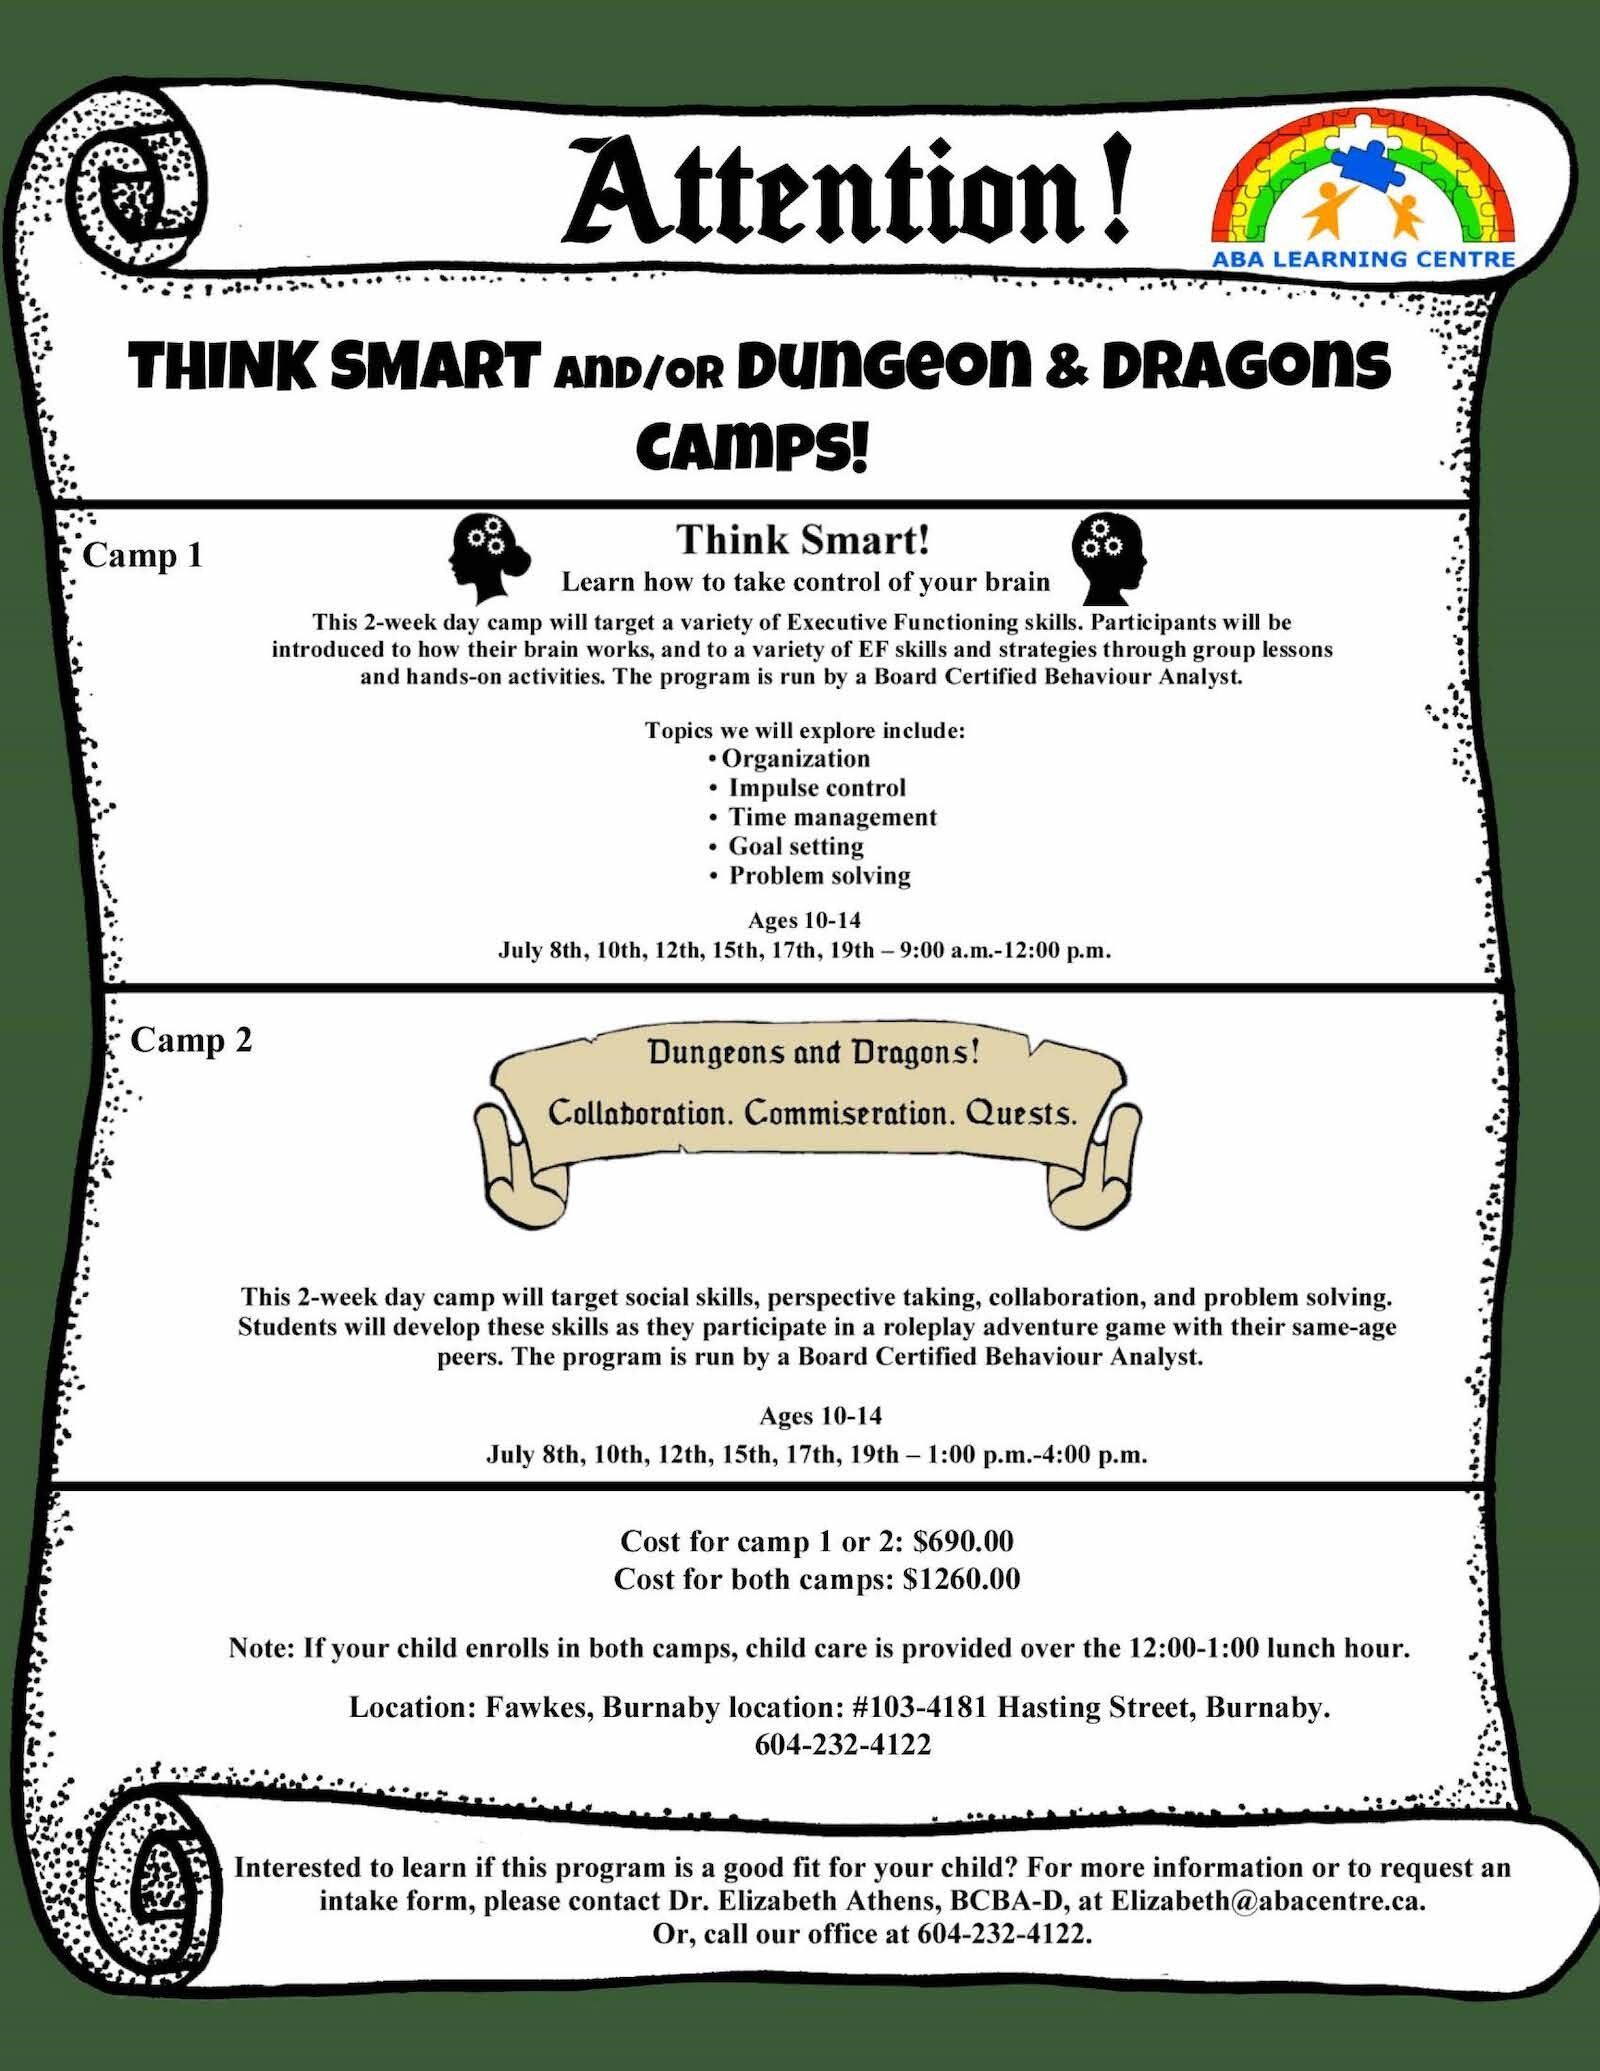 Think Smart and Dungeons & Dragons Summer Camps